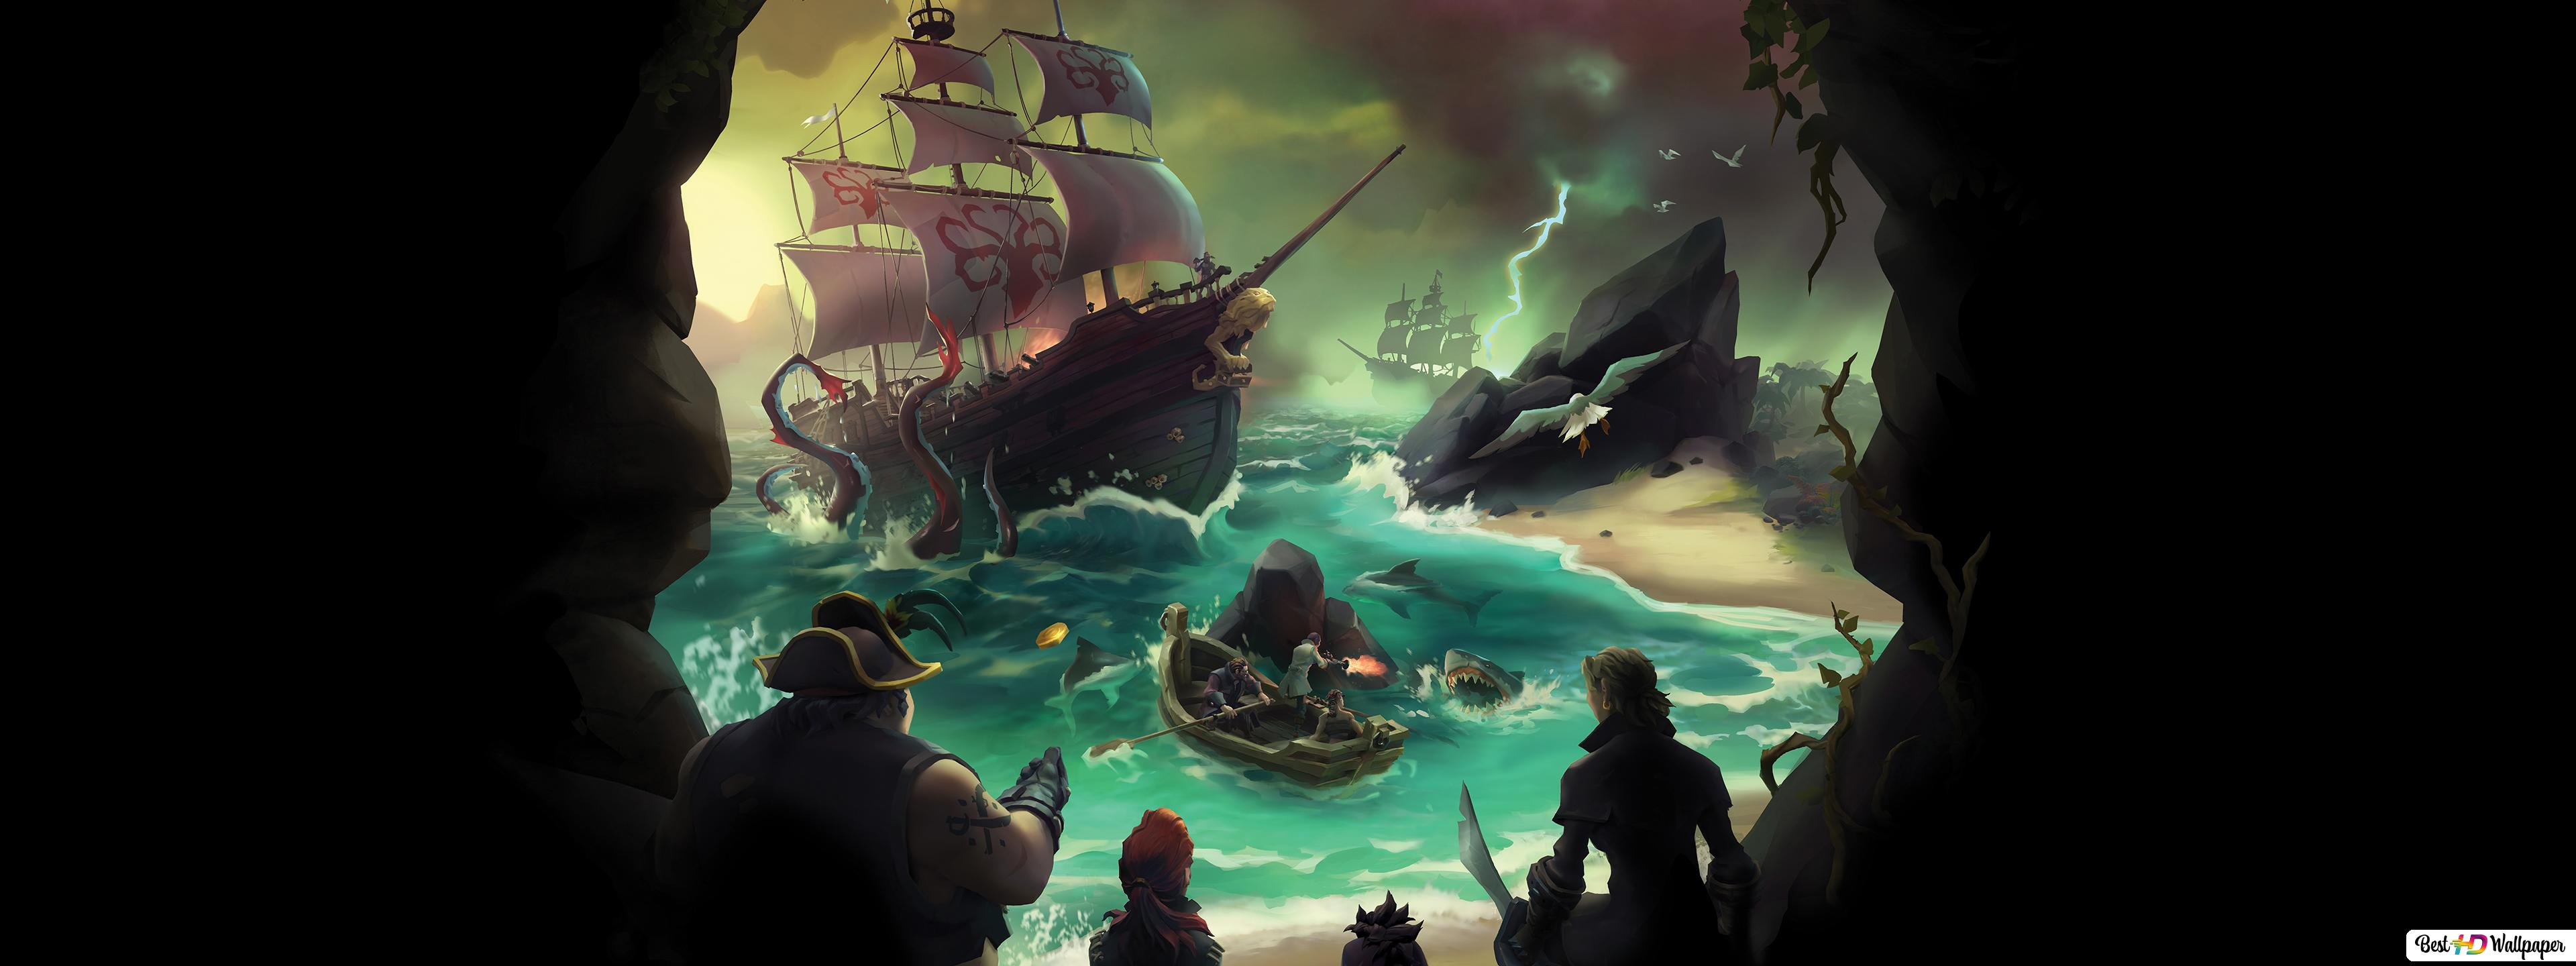 Sea Of Thieves Video Game Hd Wallpaper Download